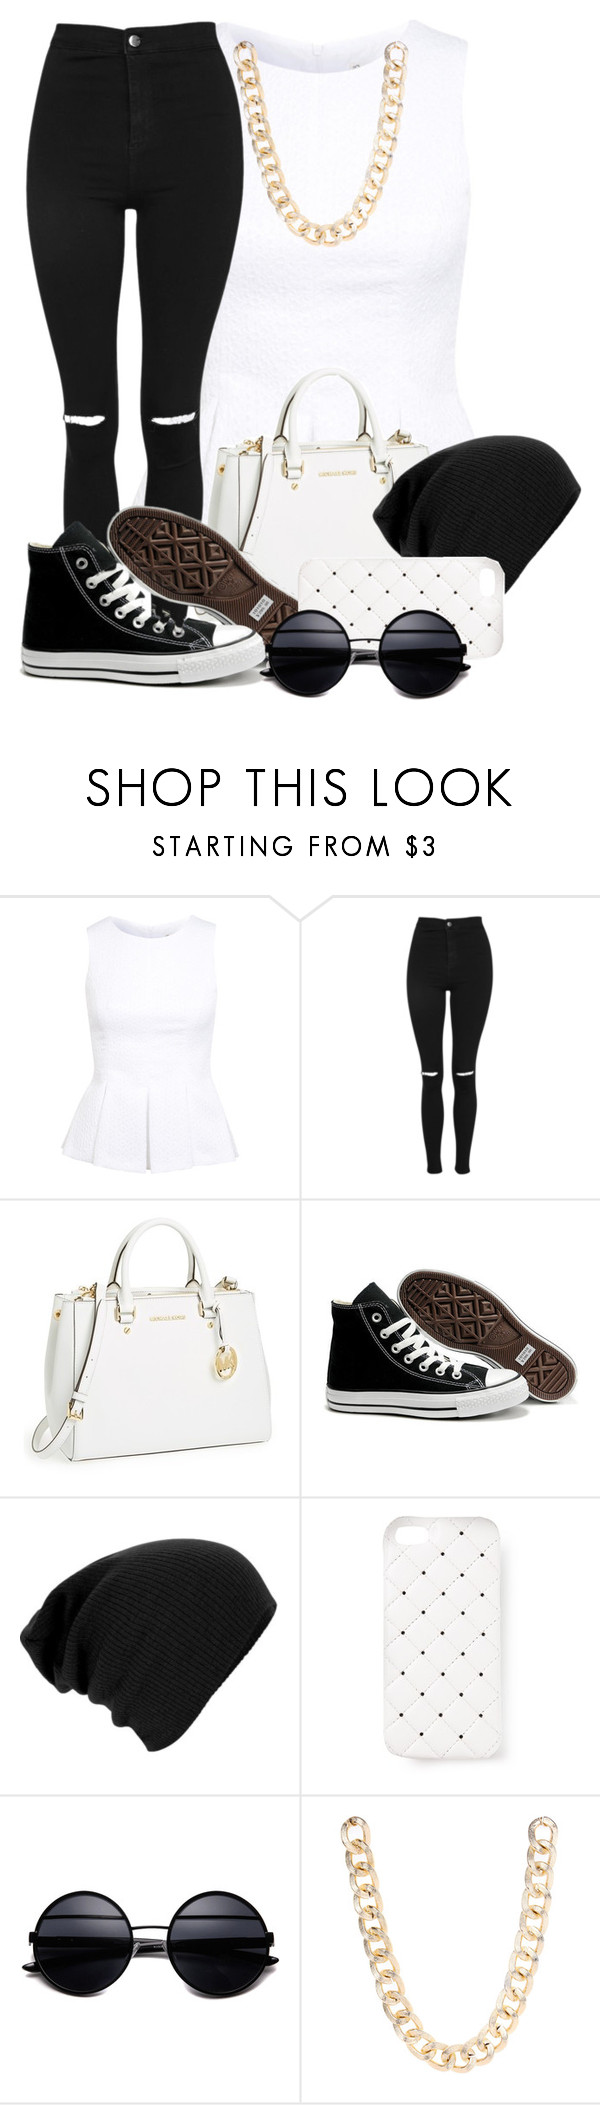 """""""6/9/14"""" by xtaylor-x ❤ liked on Polyvore featuring Miss Selfridge, Topshop, MICHAEL Michael Kors, Converse, 2Me Style and Jane Norman"""